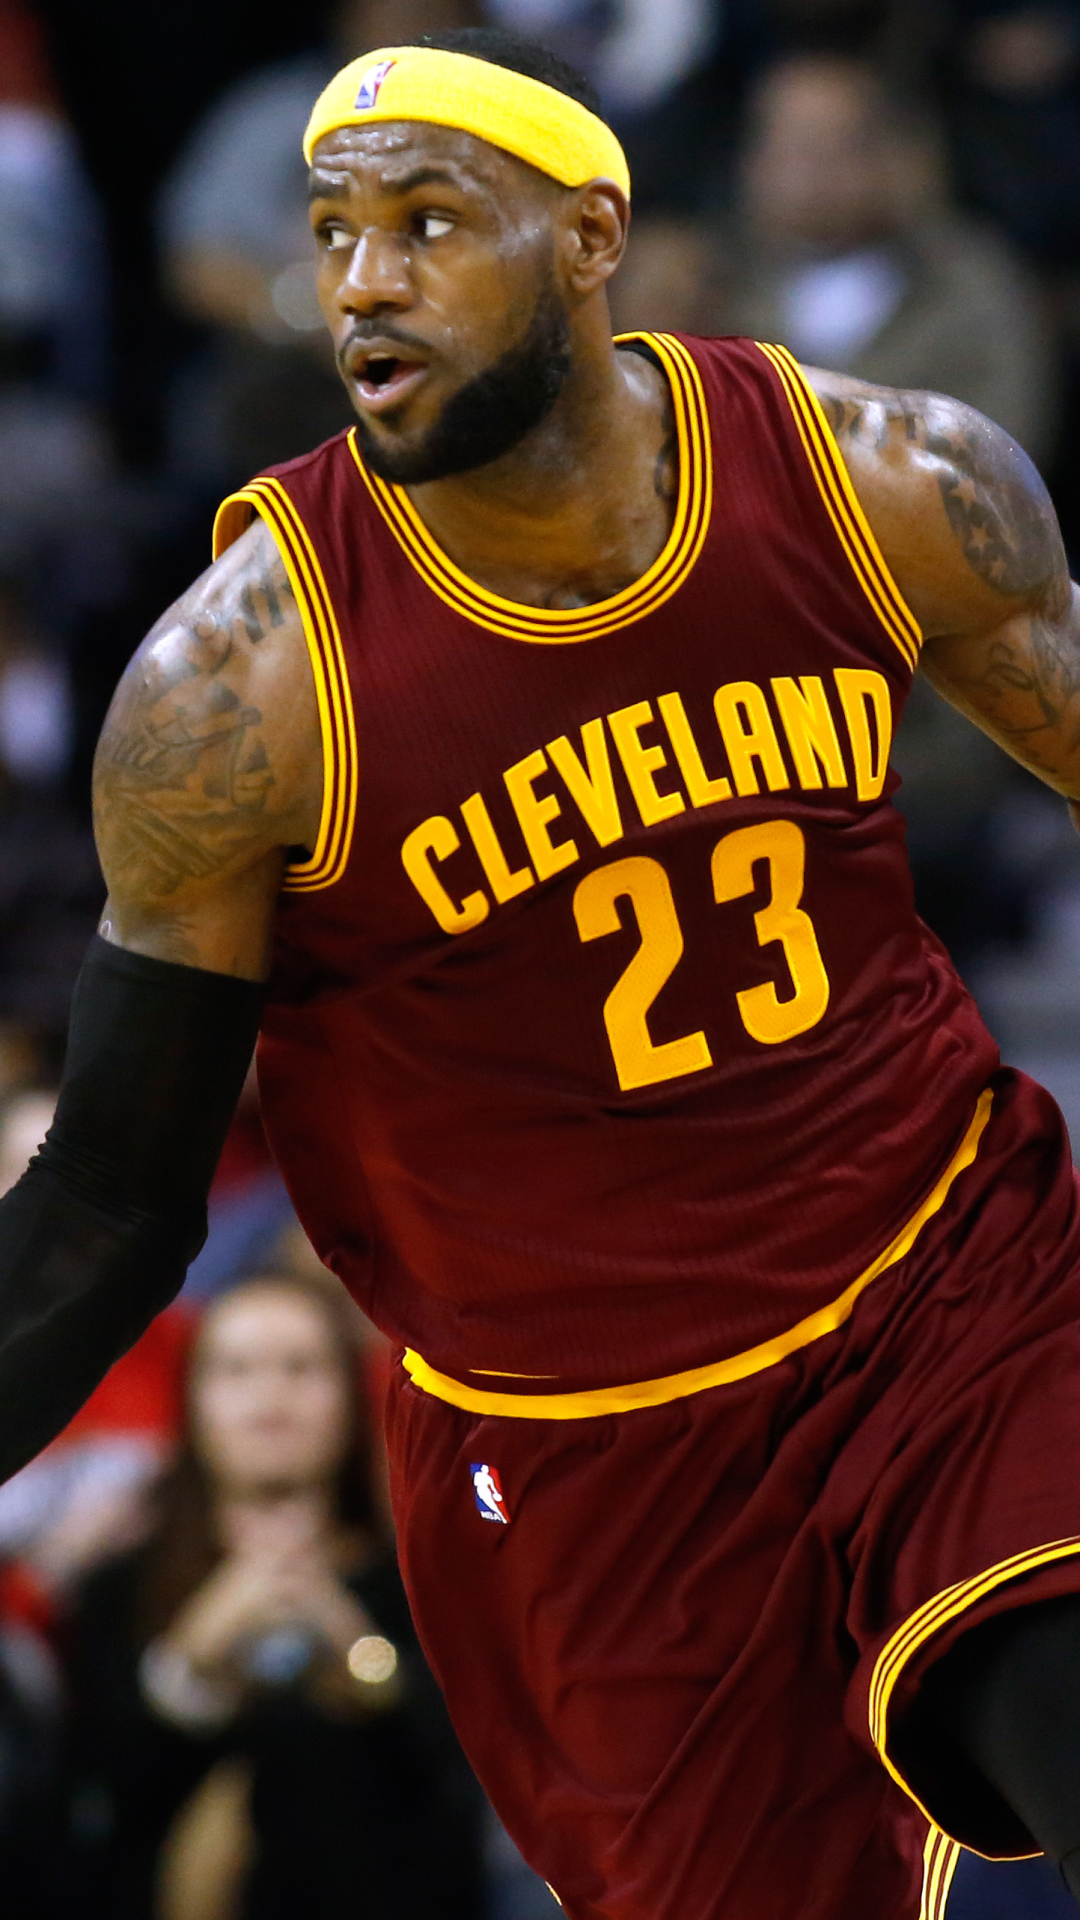 1 Lebron James Apple/iPhone 7 Plus (1080x1920) Wallpapers - Mobile ...